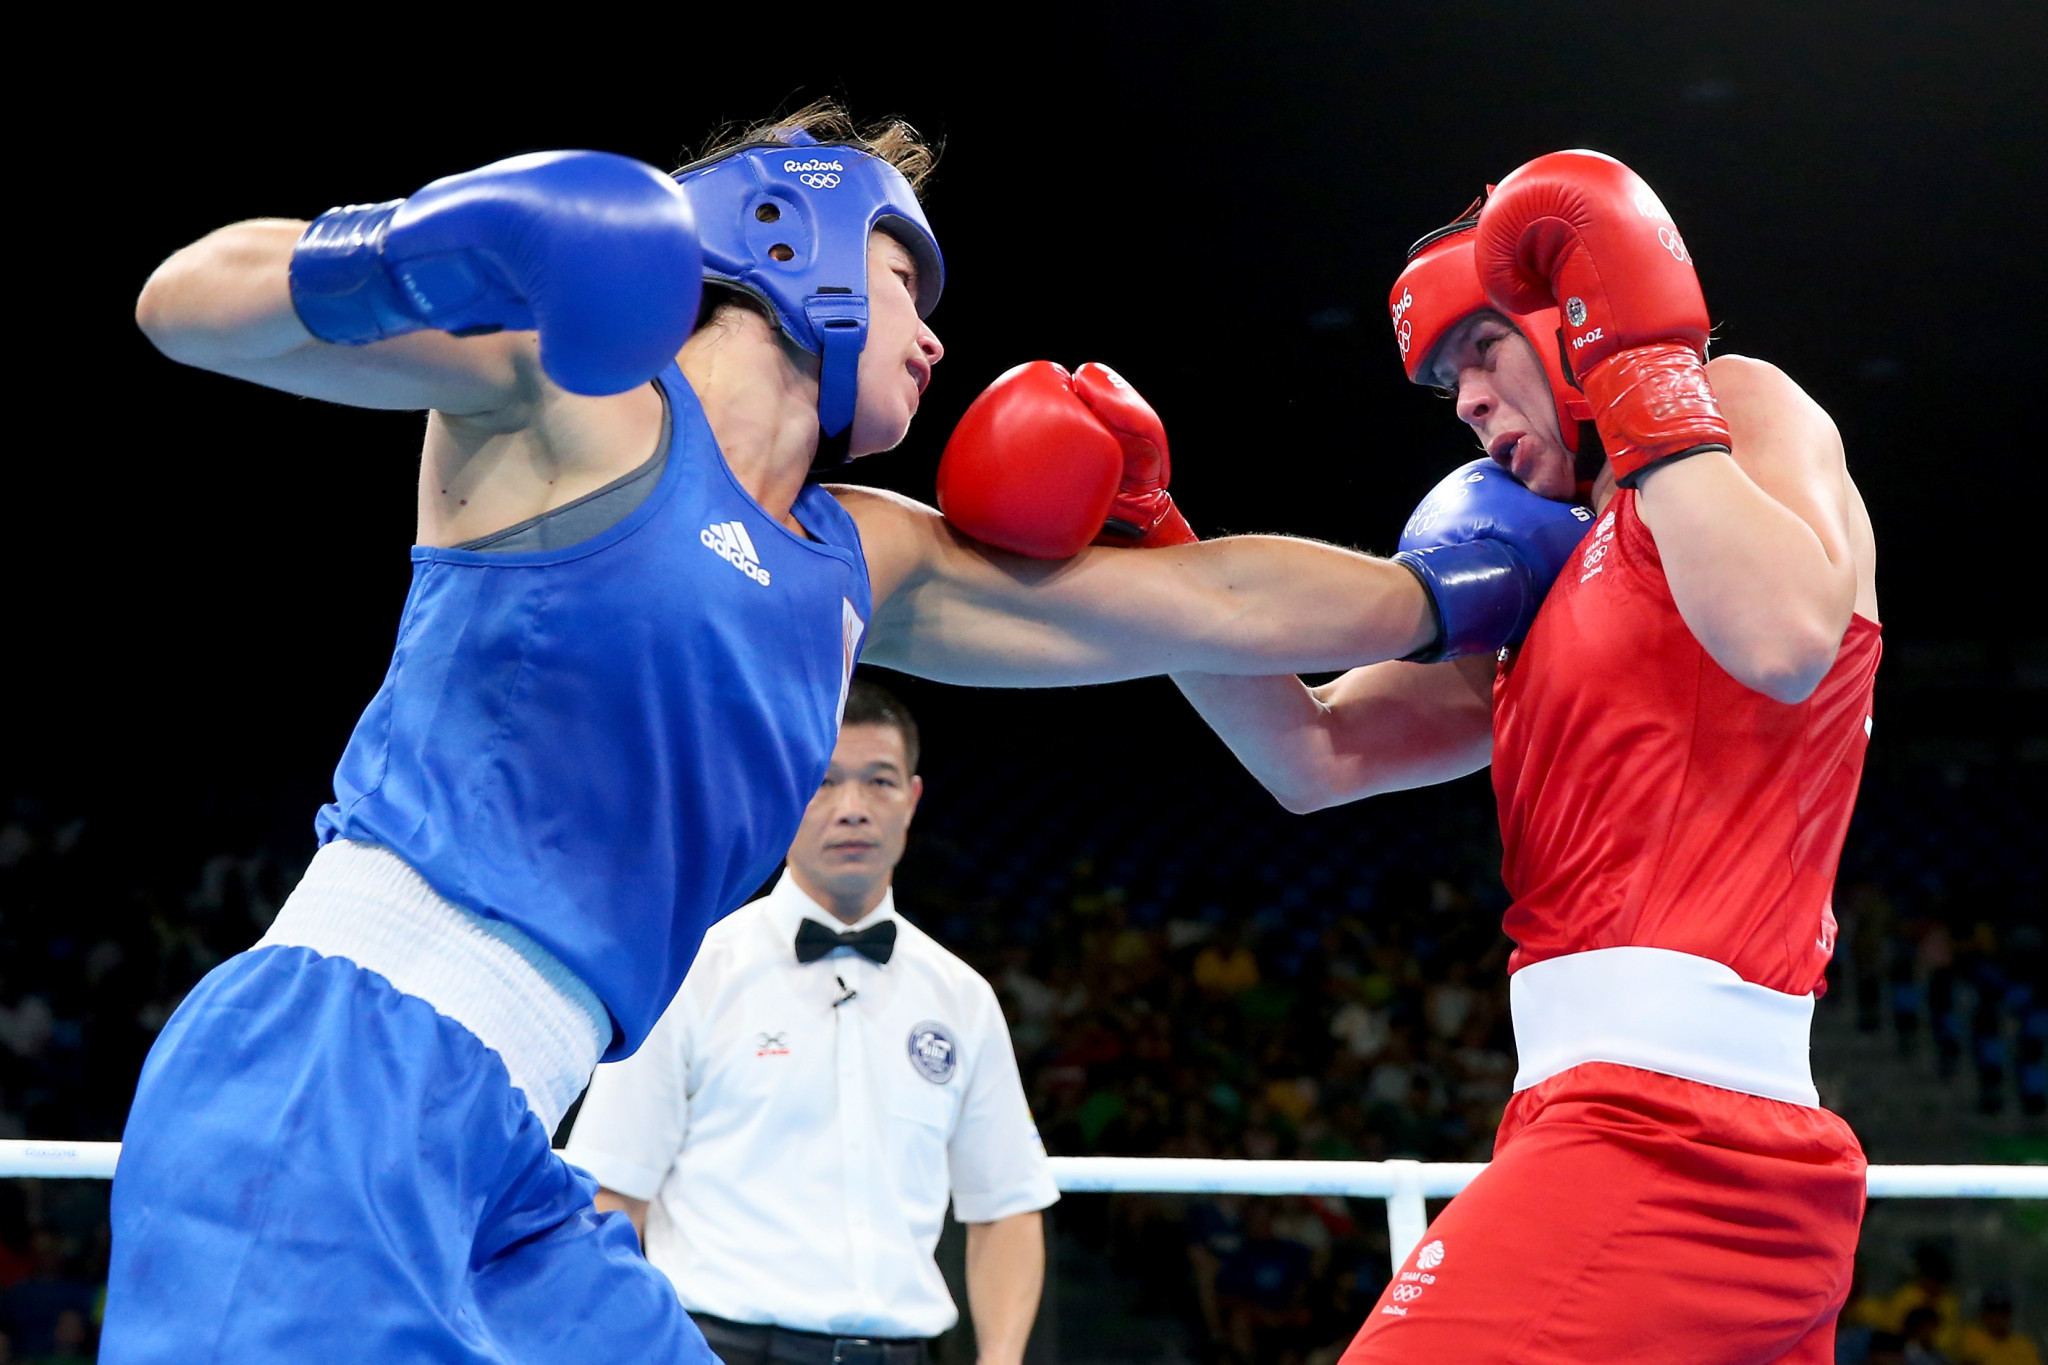 AIBA will not play any role in organising Olympic boxing at Tokyo 2020 ©Getty Images